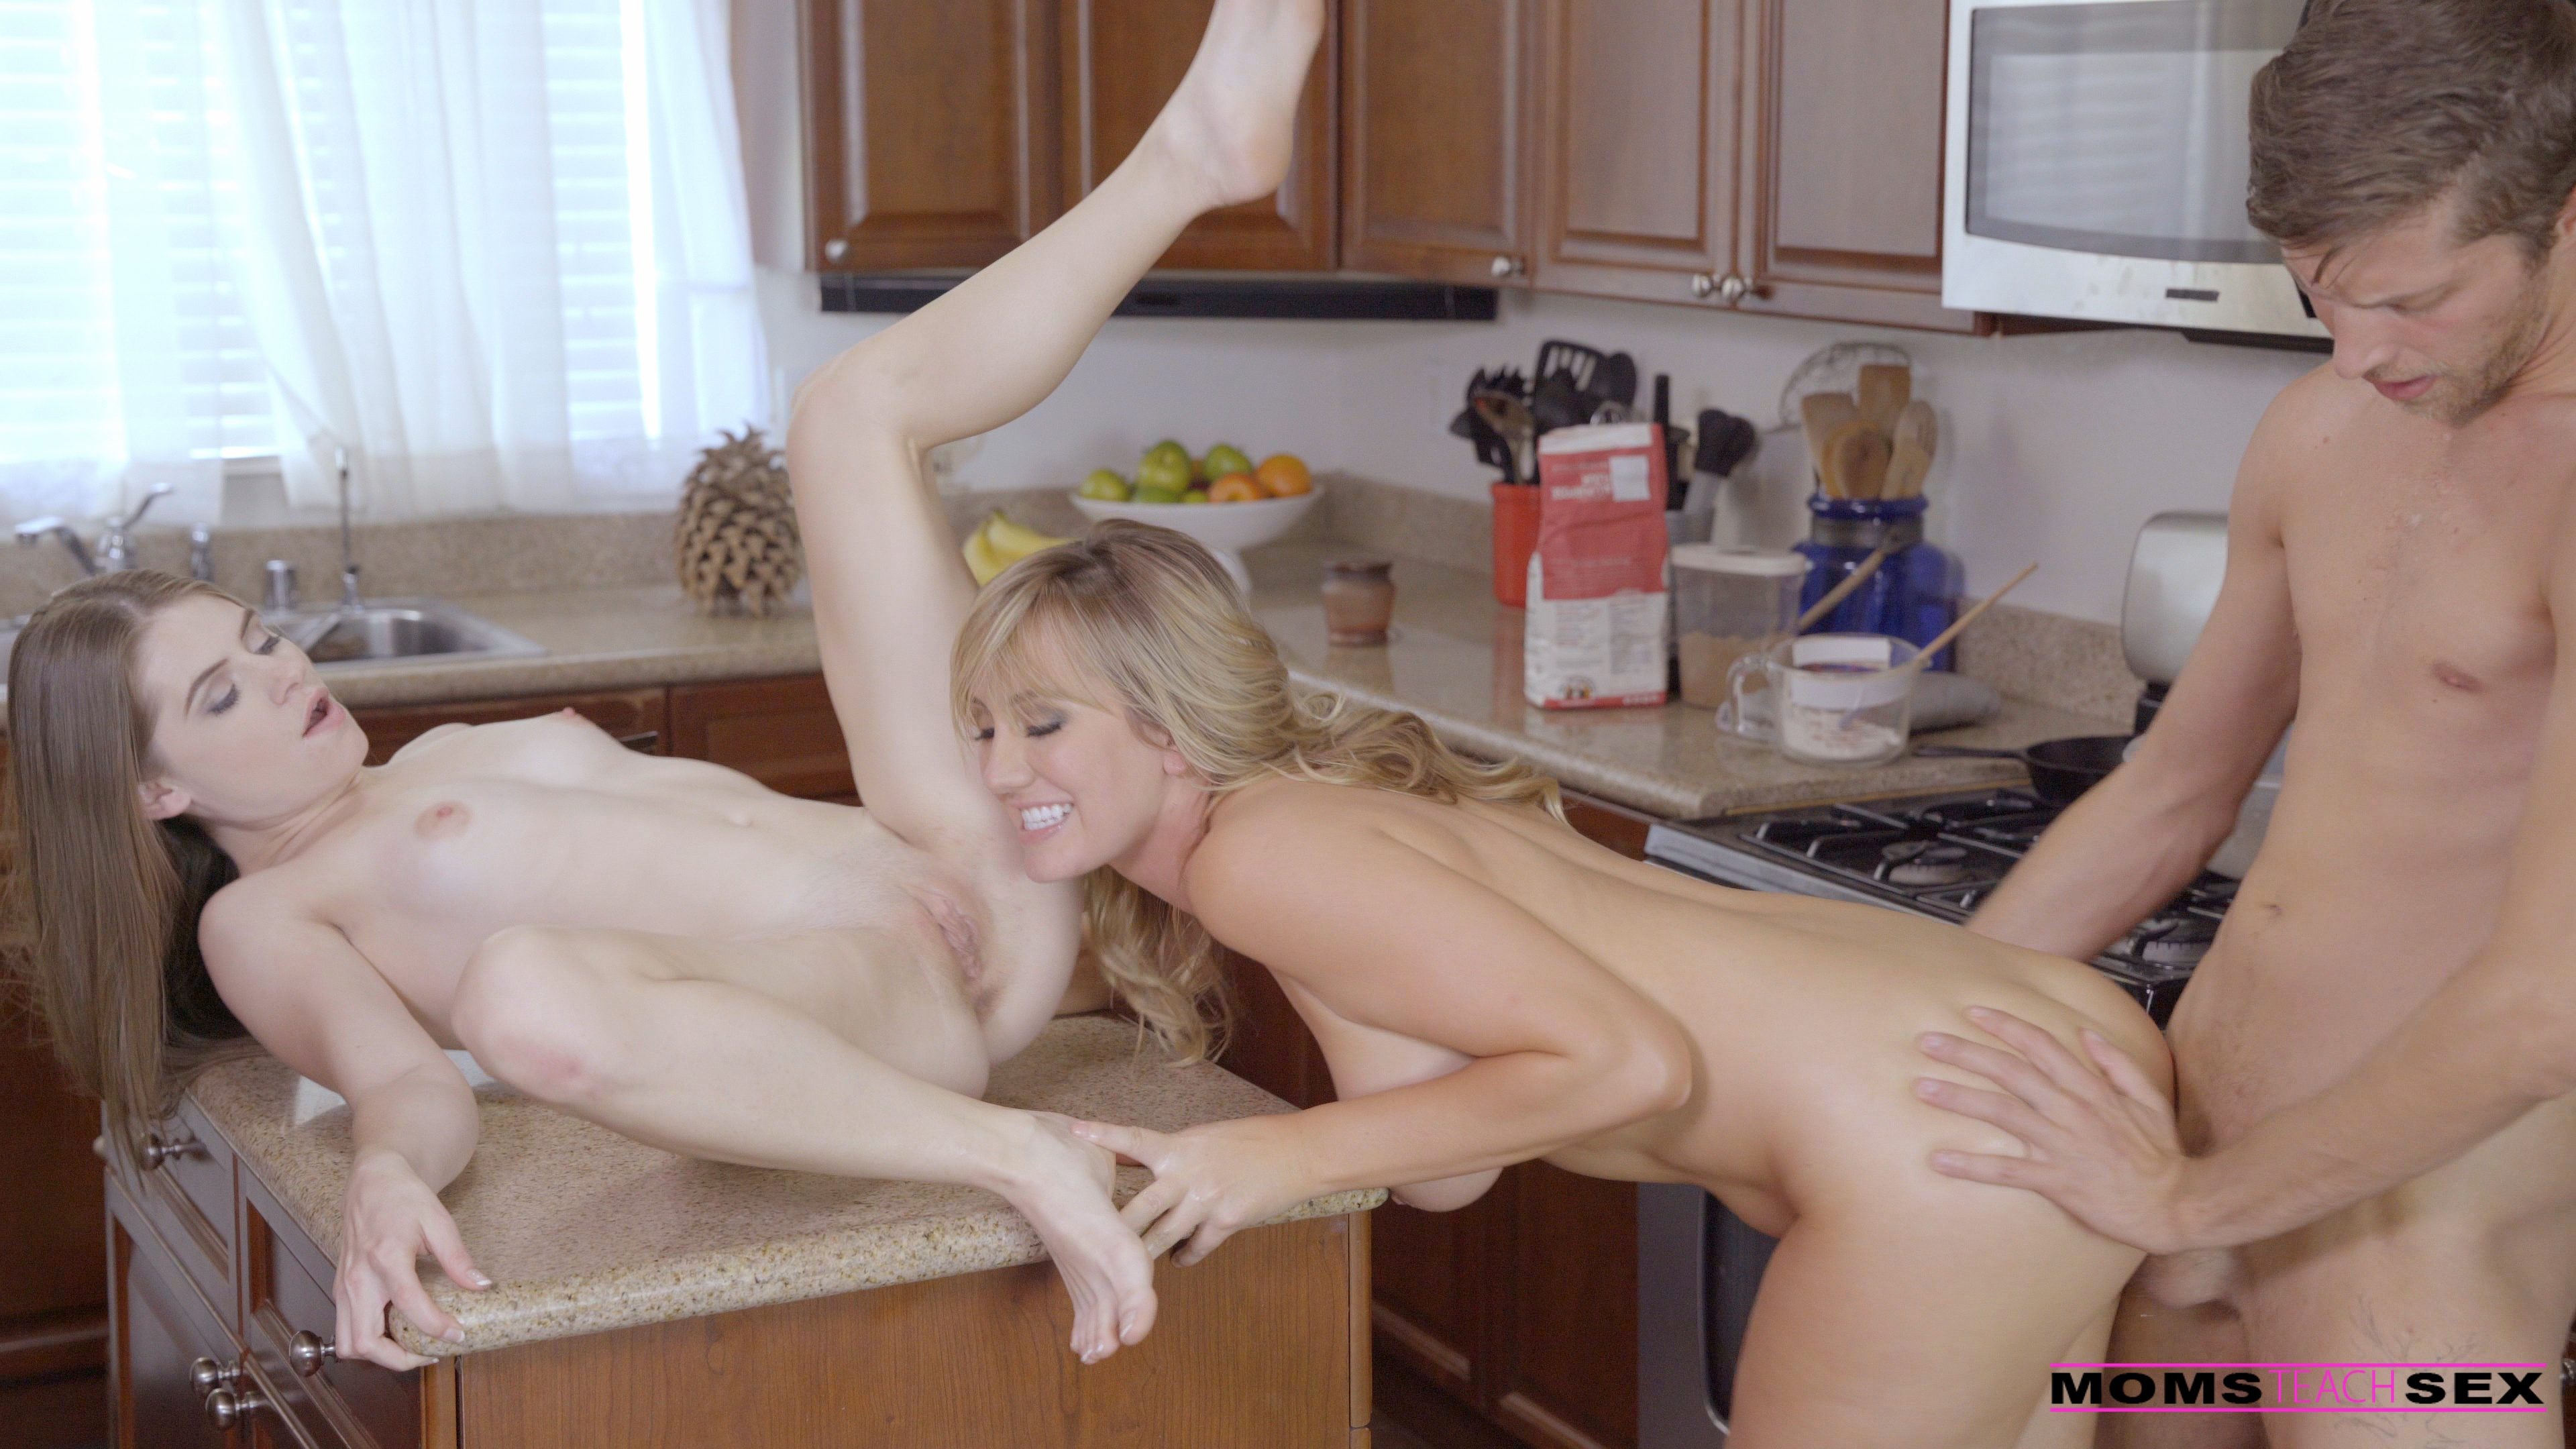 MomsTeachSex.com - Alice March,Brett Rossi: Hot In Here - S6:E1